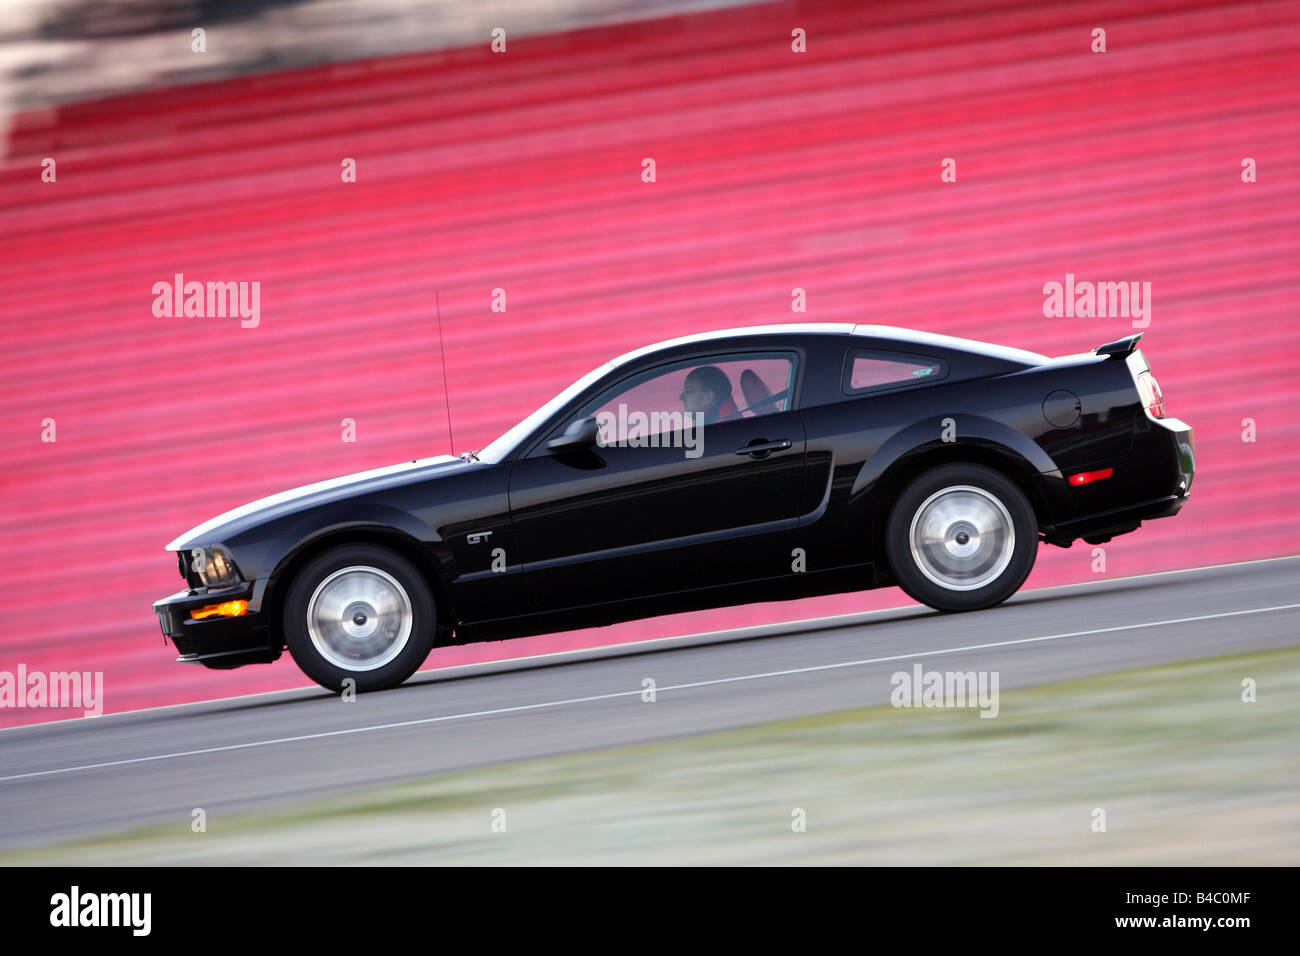 car ford mustang gt model stock photos car ford mustang gt model stock images alamy. Black Bedroom Furniture Sets. Home Design Ideas